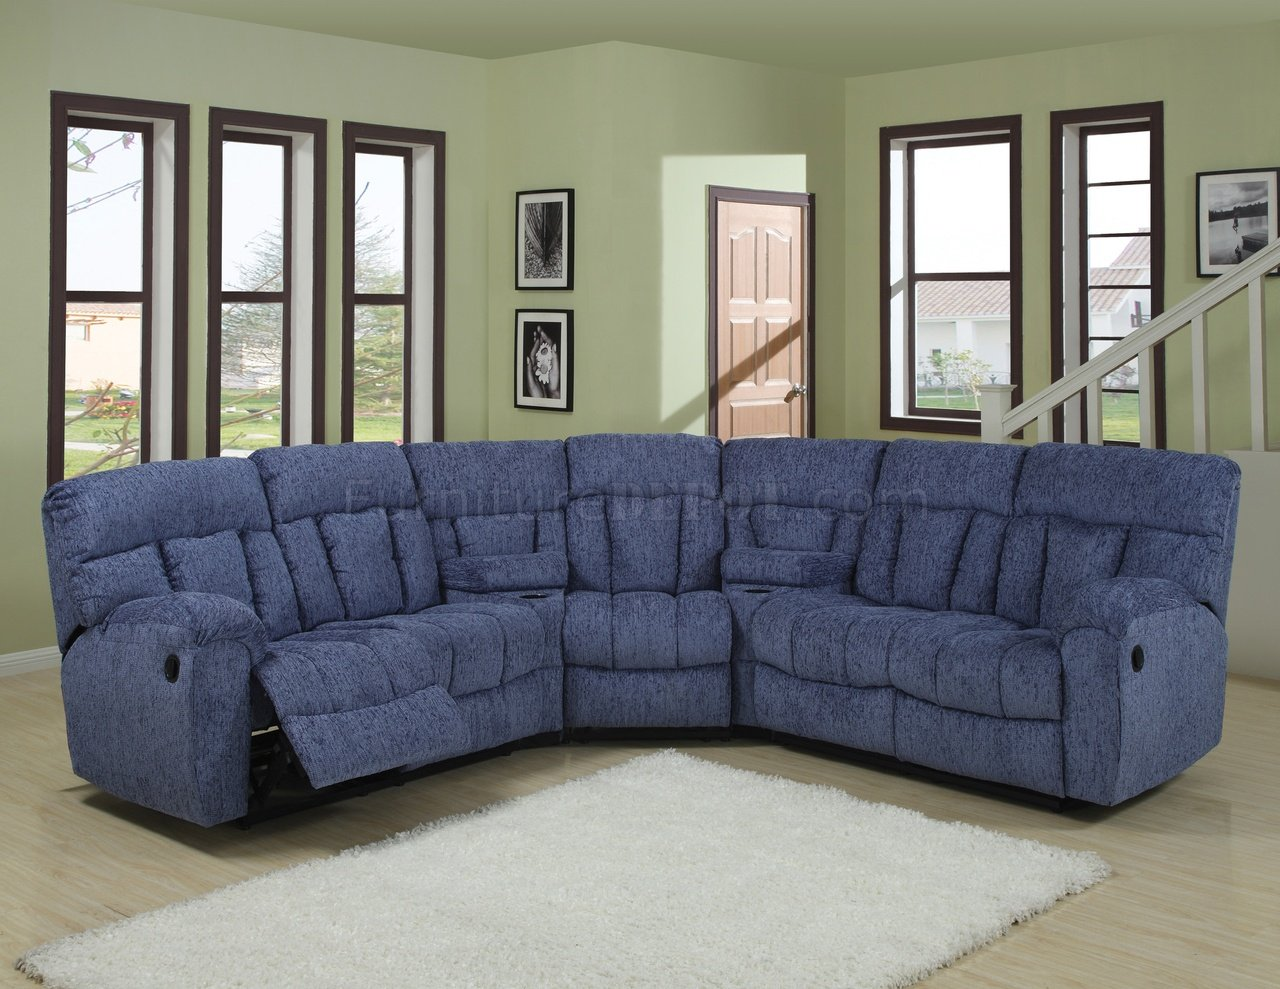 blue fabric recliner sofa cindy crawford home beachside natural or beige modern 5pc reclining sectional